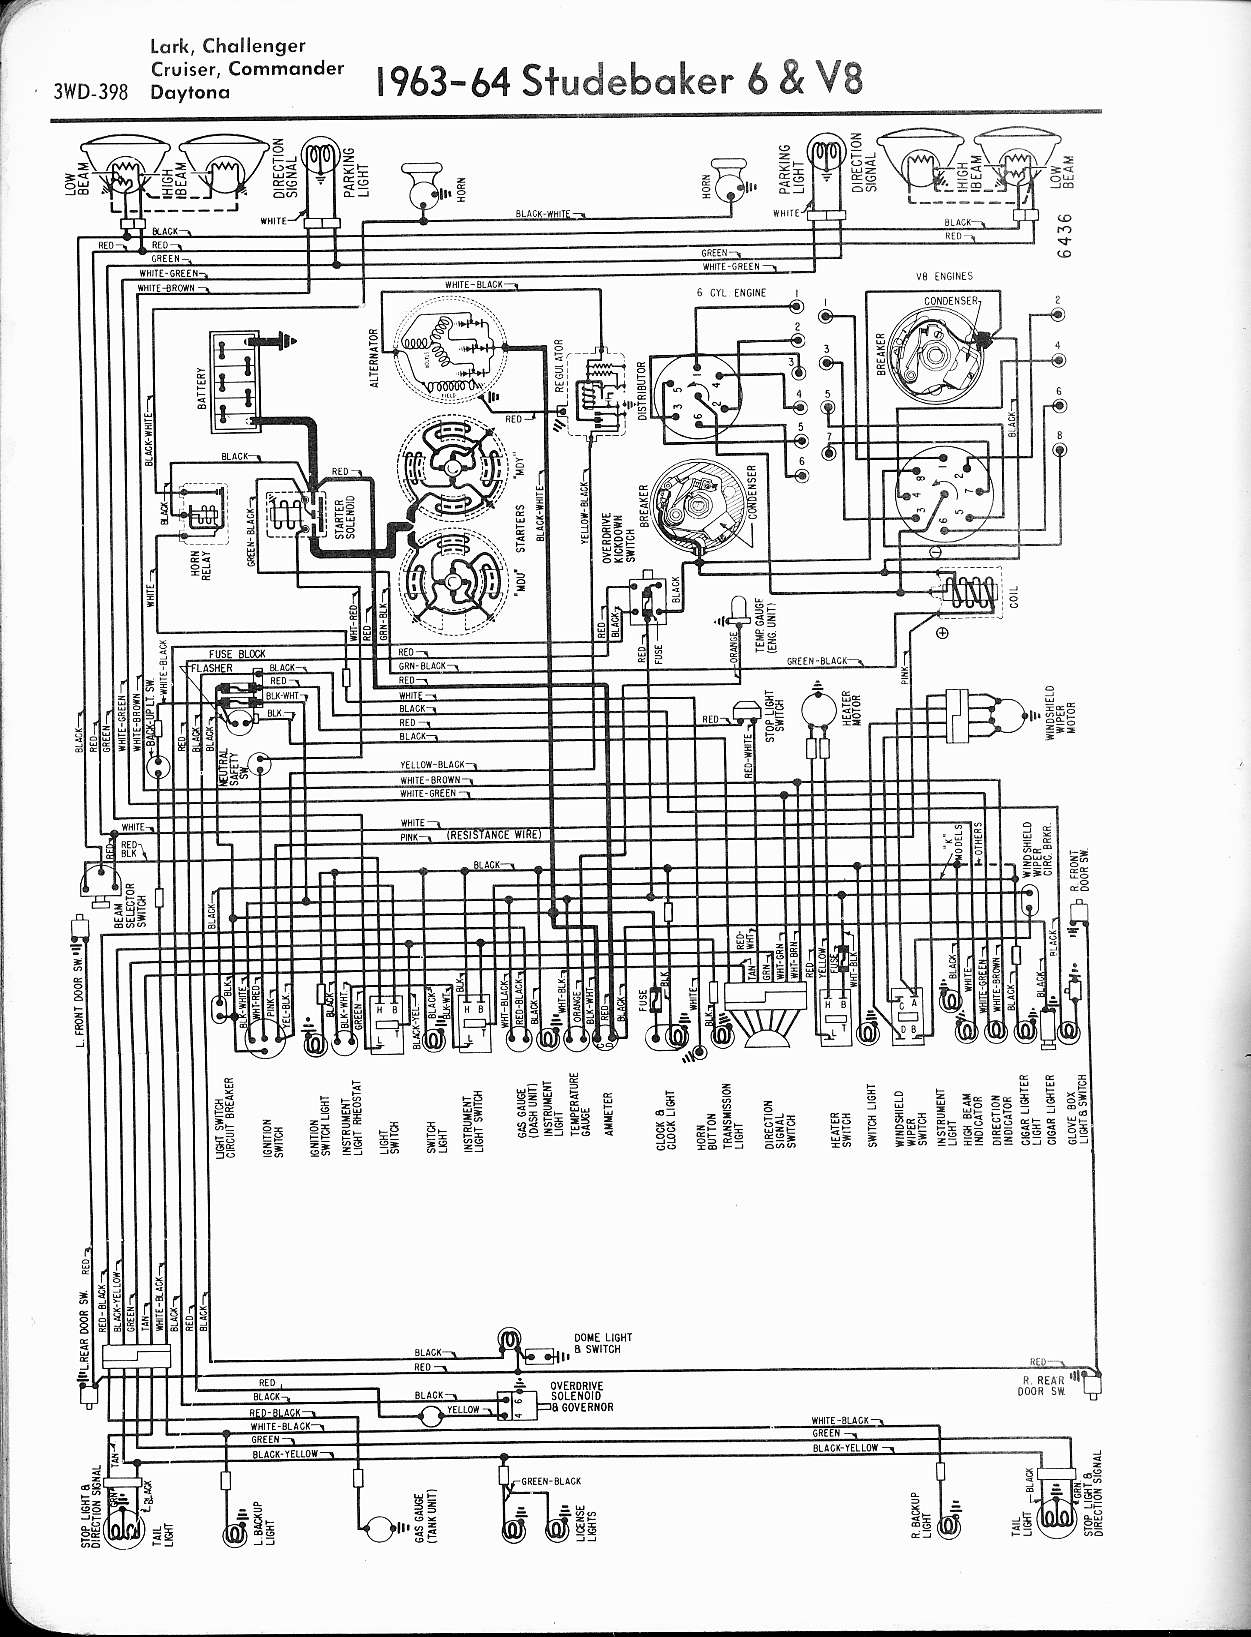 DIAGRAM 1950 Studebaker Wiring Diagram Schematic FULL ...